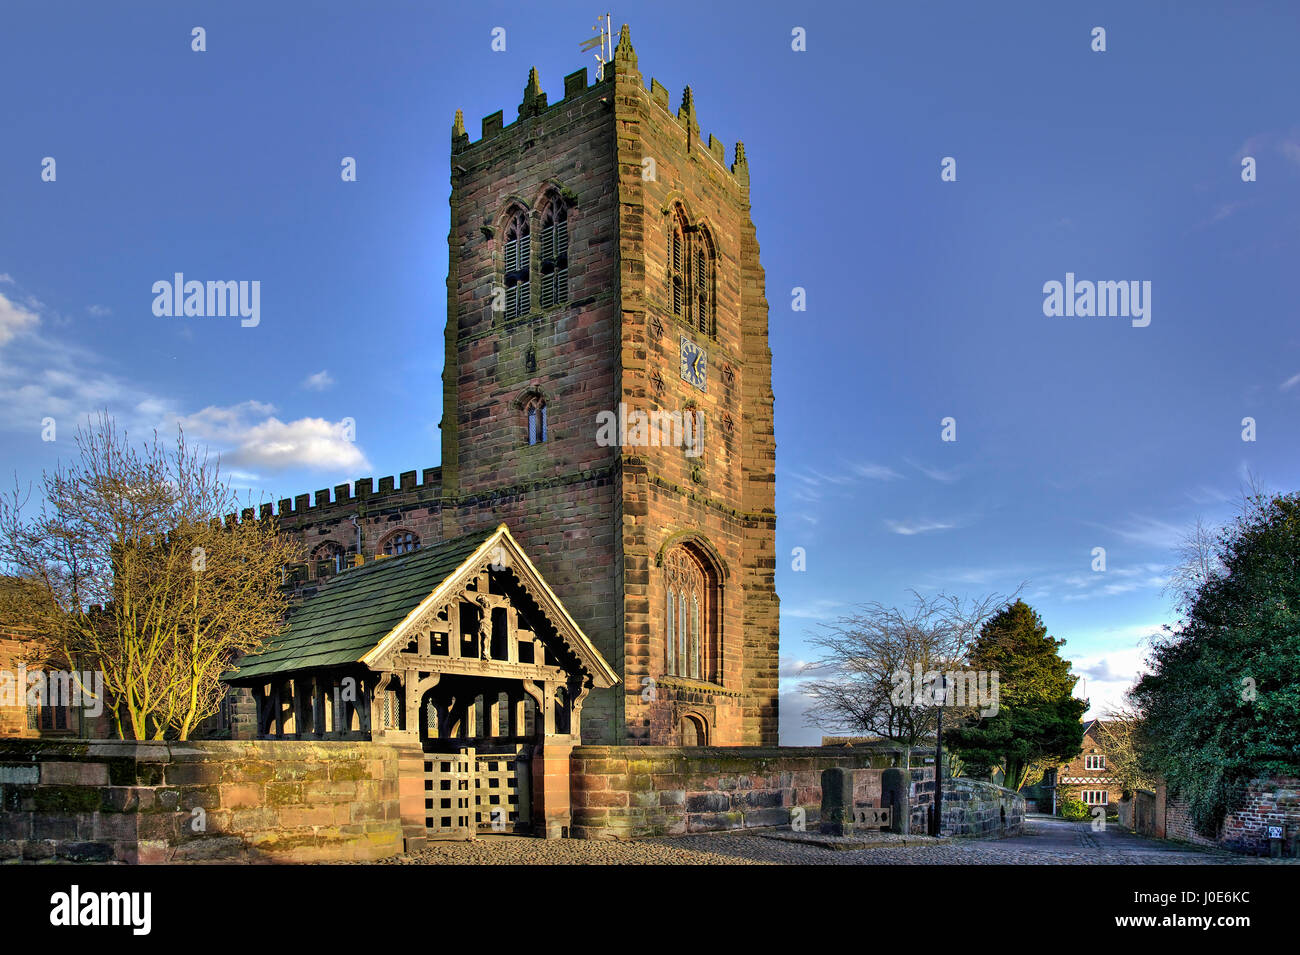 St Marys and All Saints Church in the Cheshire village of Great Budworth. - Stock Image